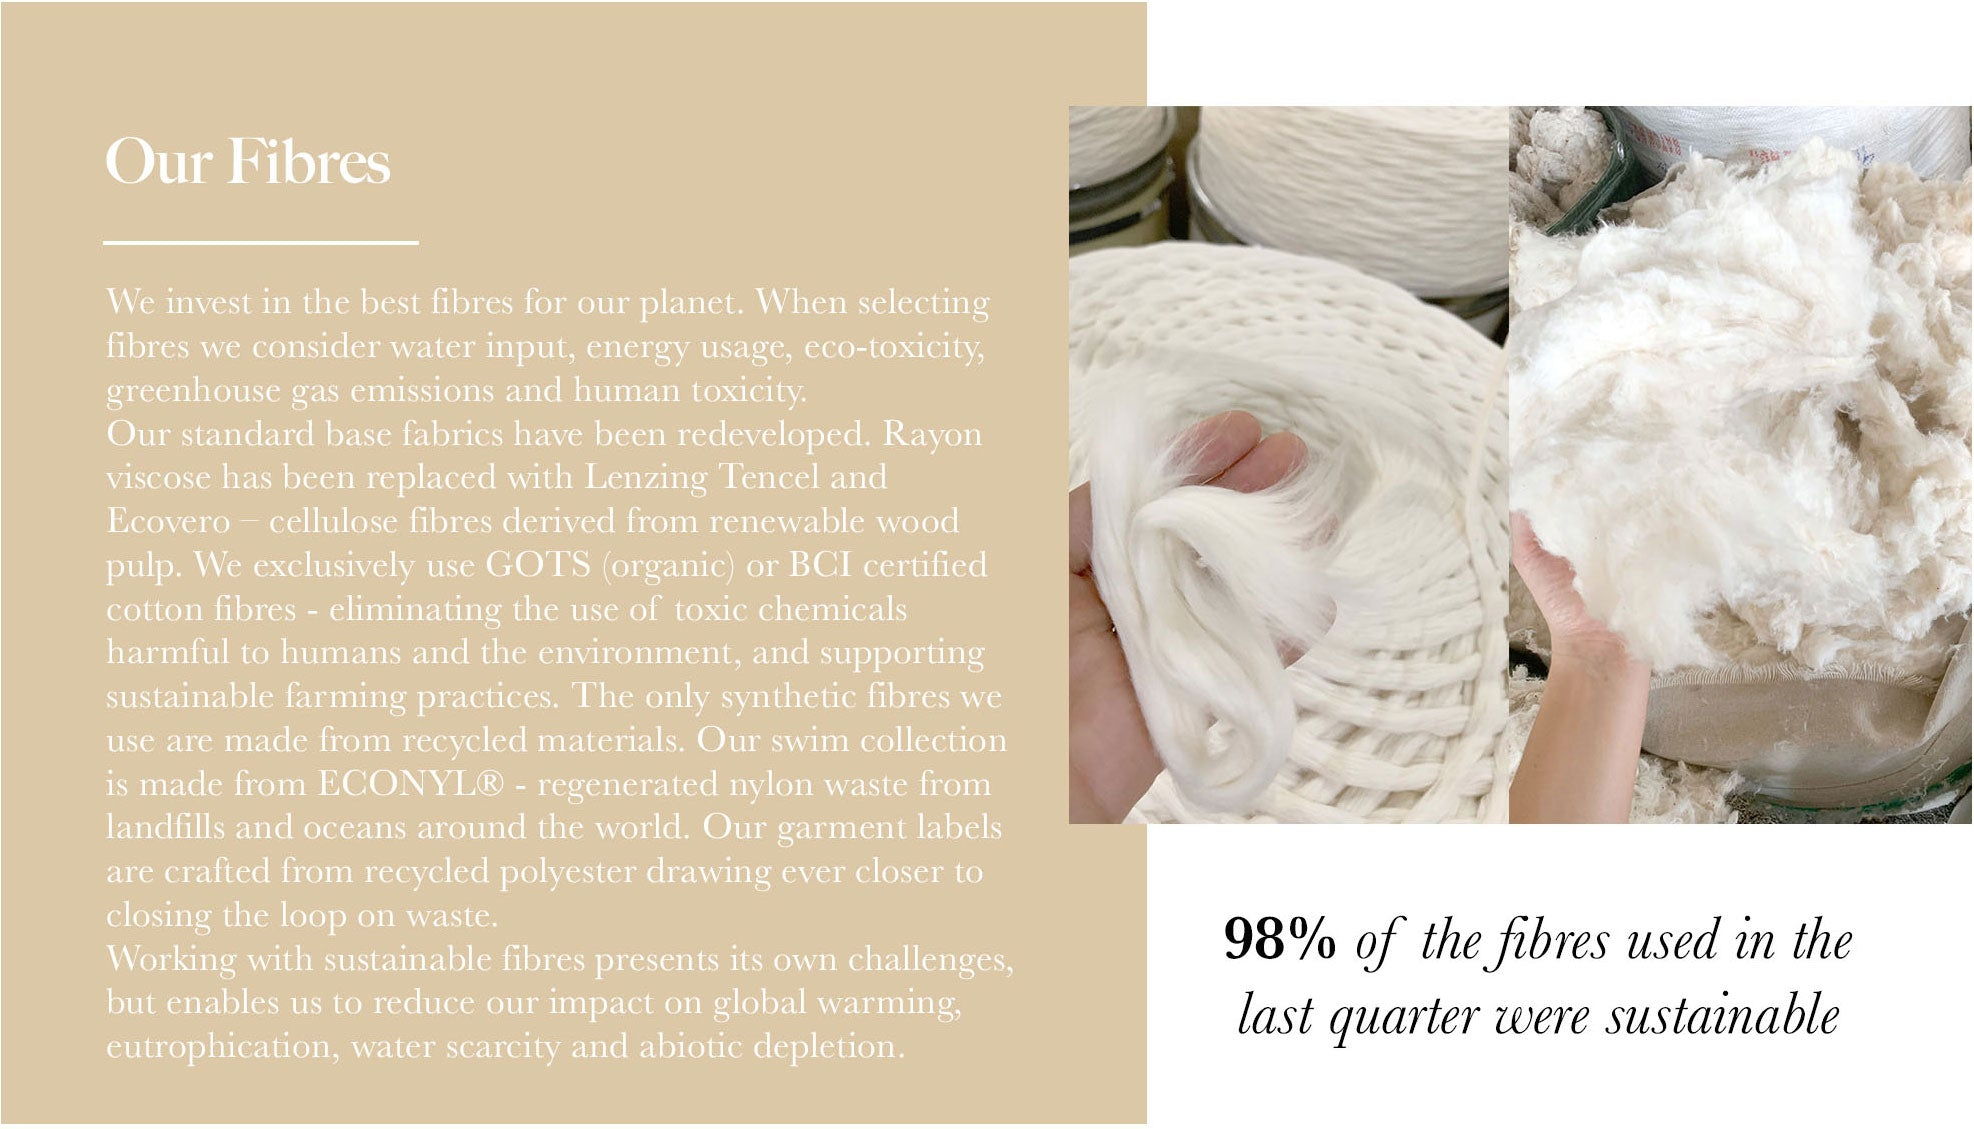 Discover Arnhem clothing who use 98% sustainable fabrics